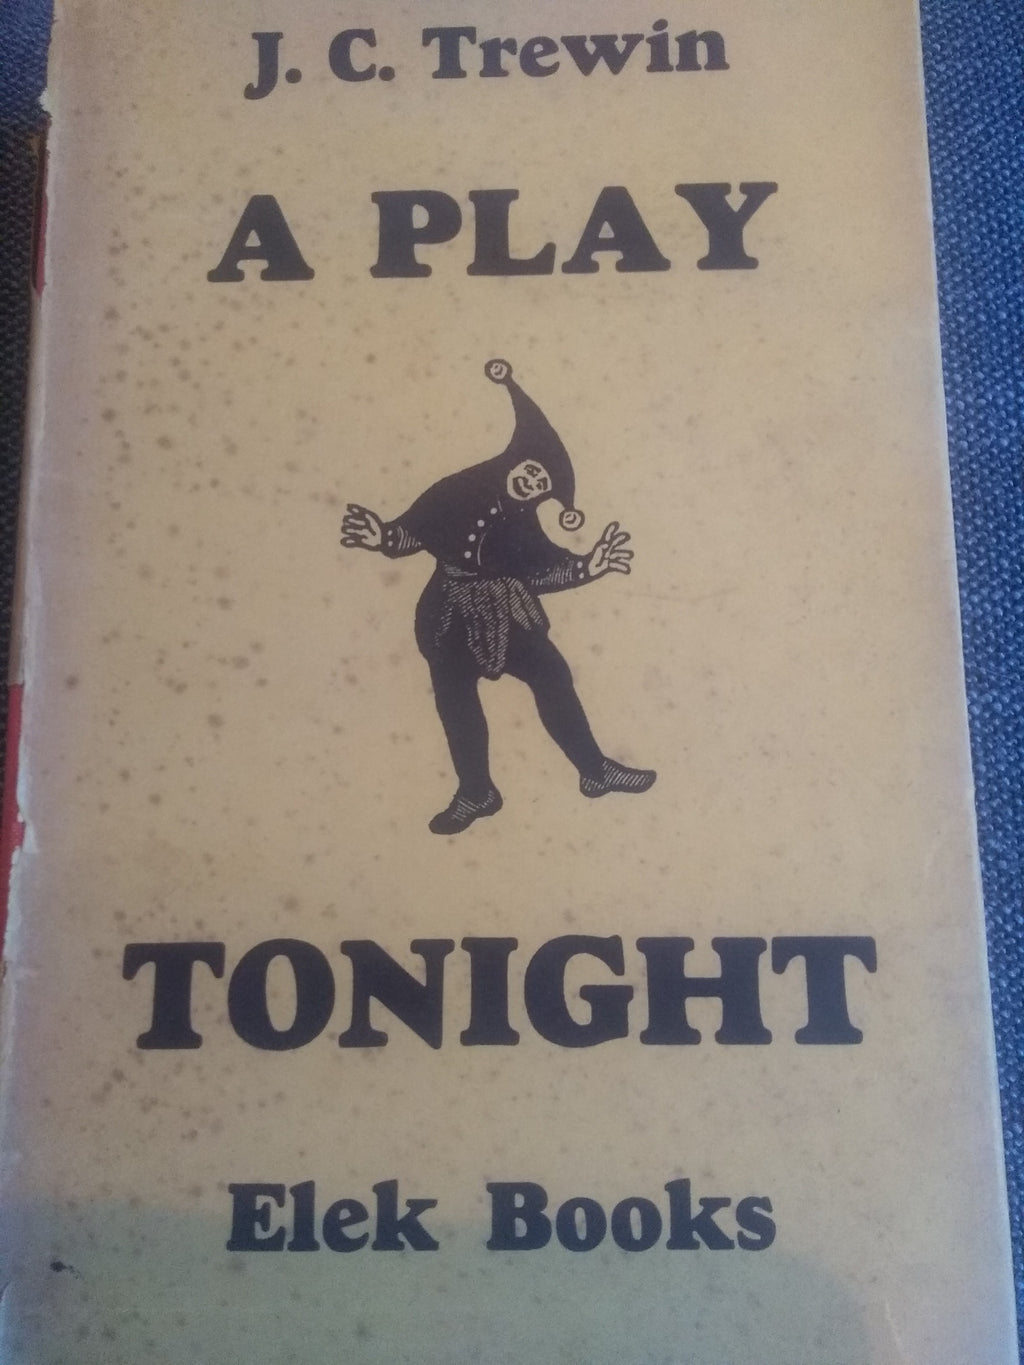 A Play Tonight, by J.C. Trewin